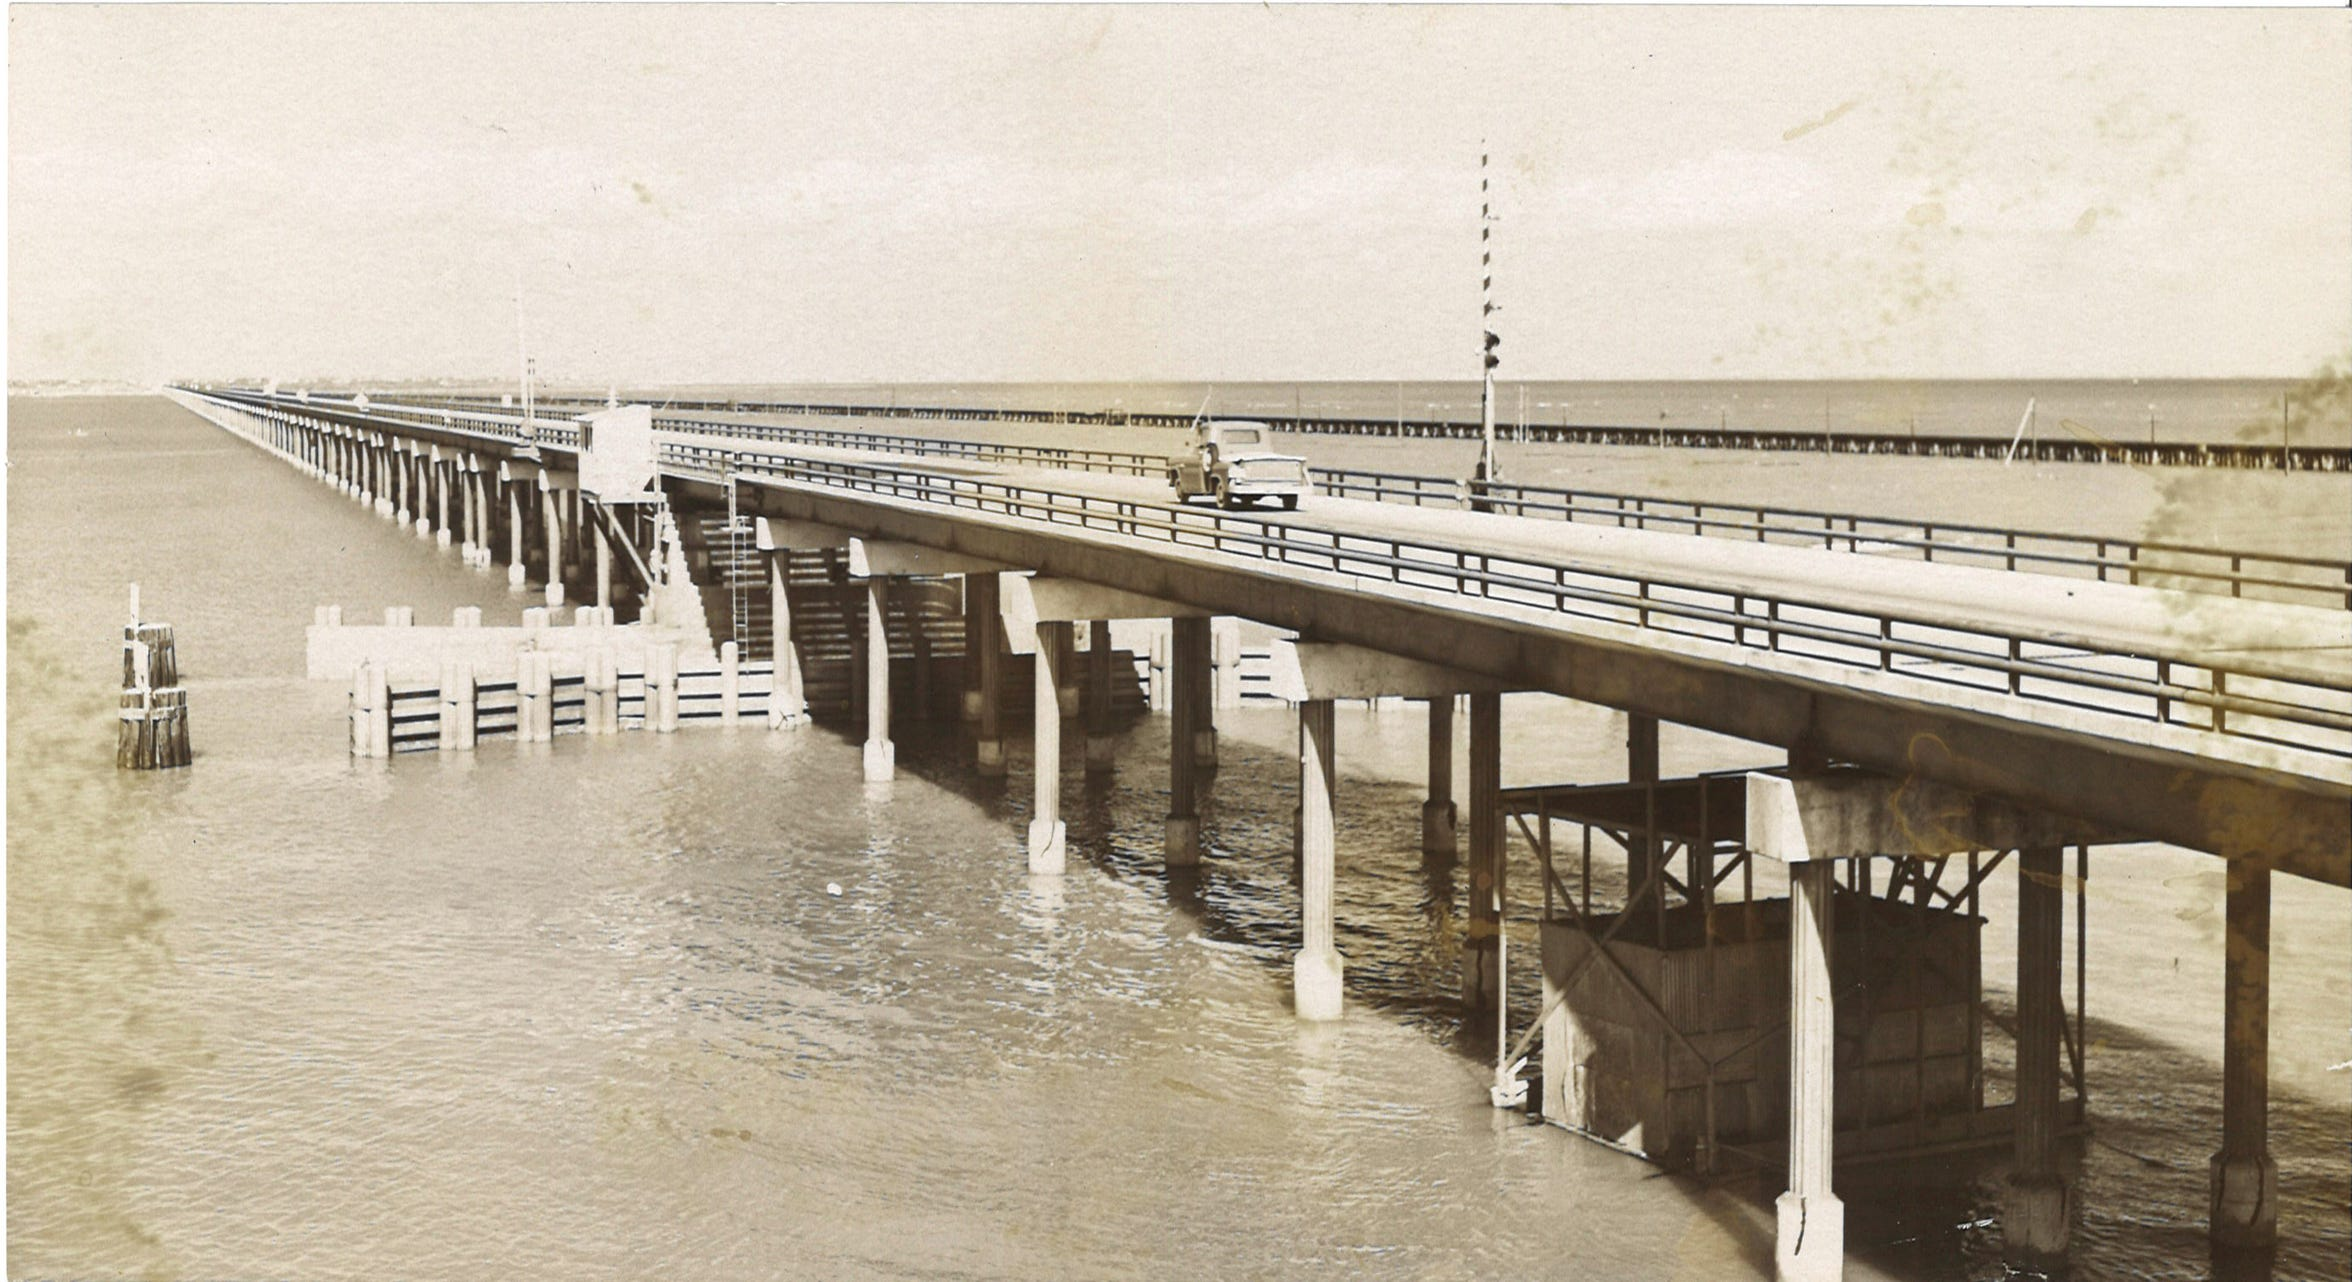 Traffic travels along the Nueces Bay Causeway in October 1959 shortly before the Harbor Bridge opened.